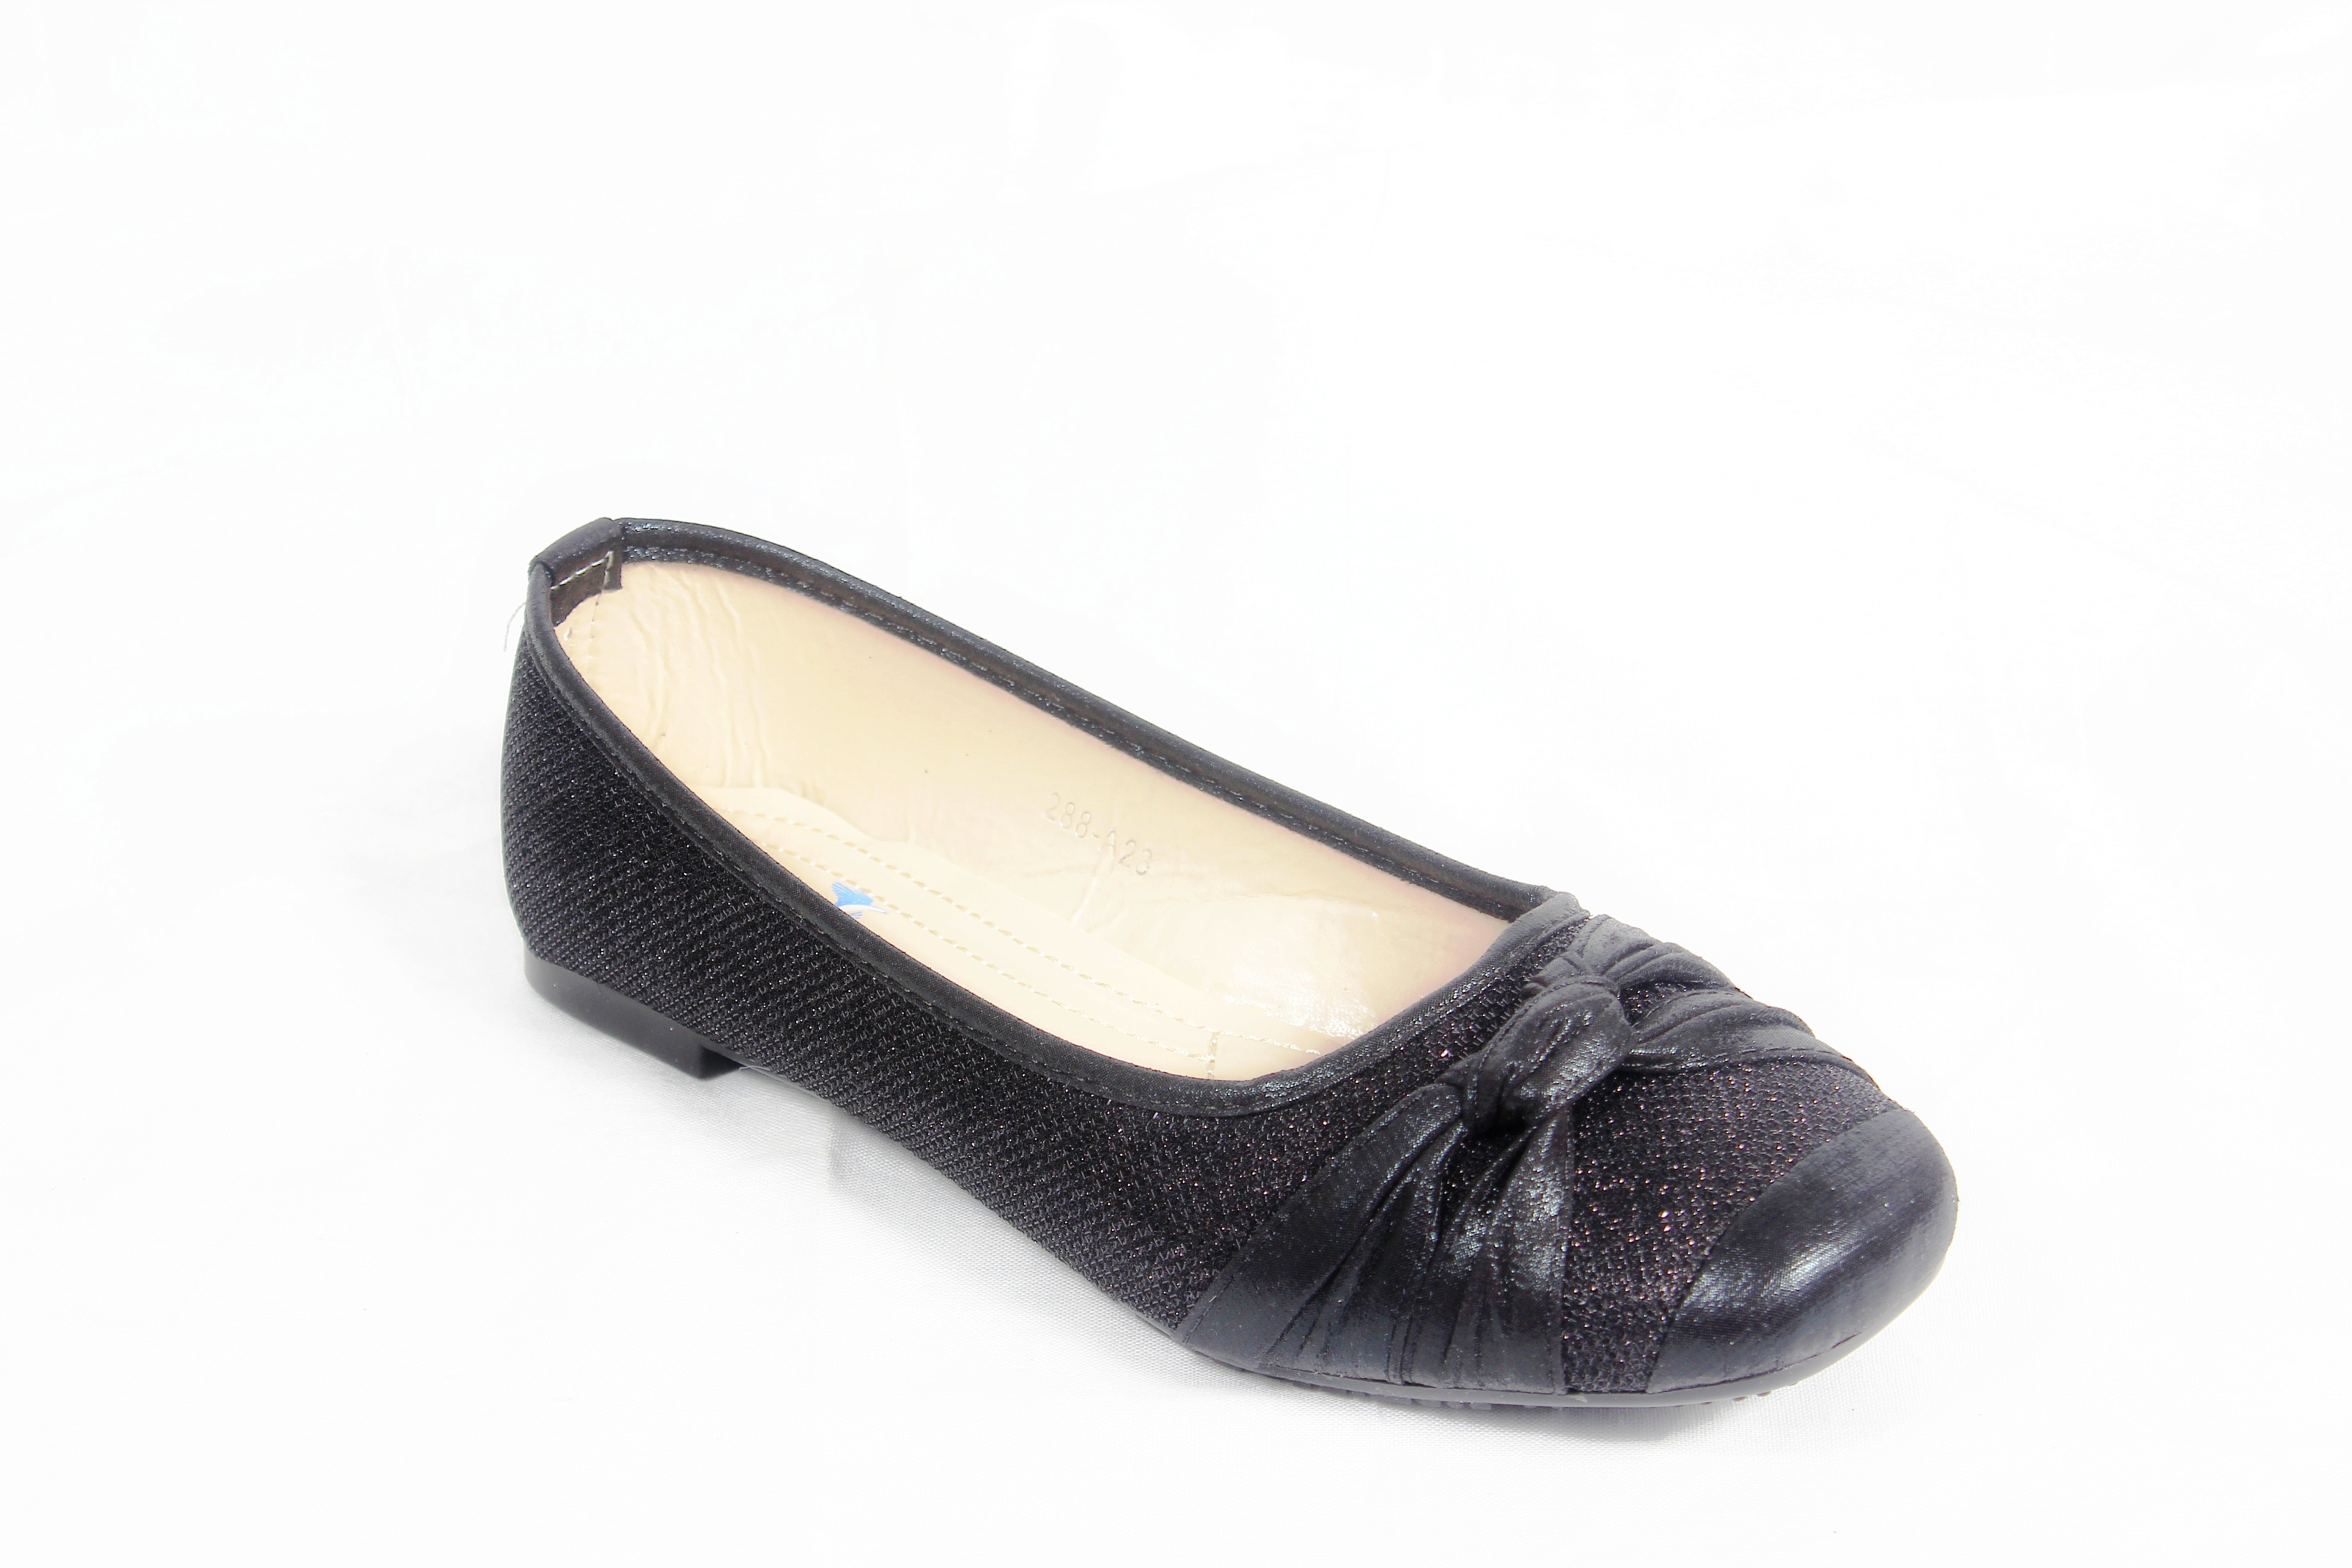 belson spiffy comfortable square toed black flat shoes for